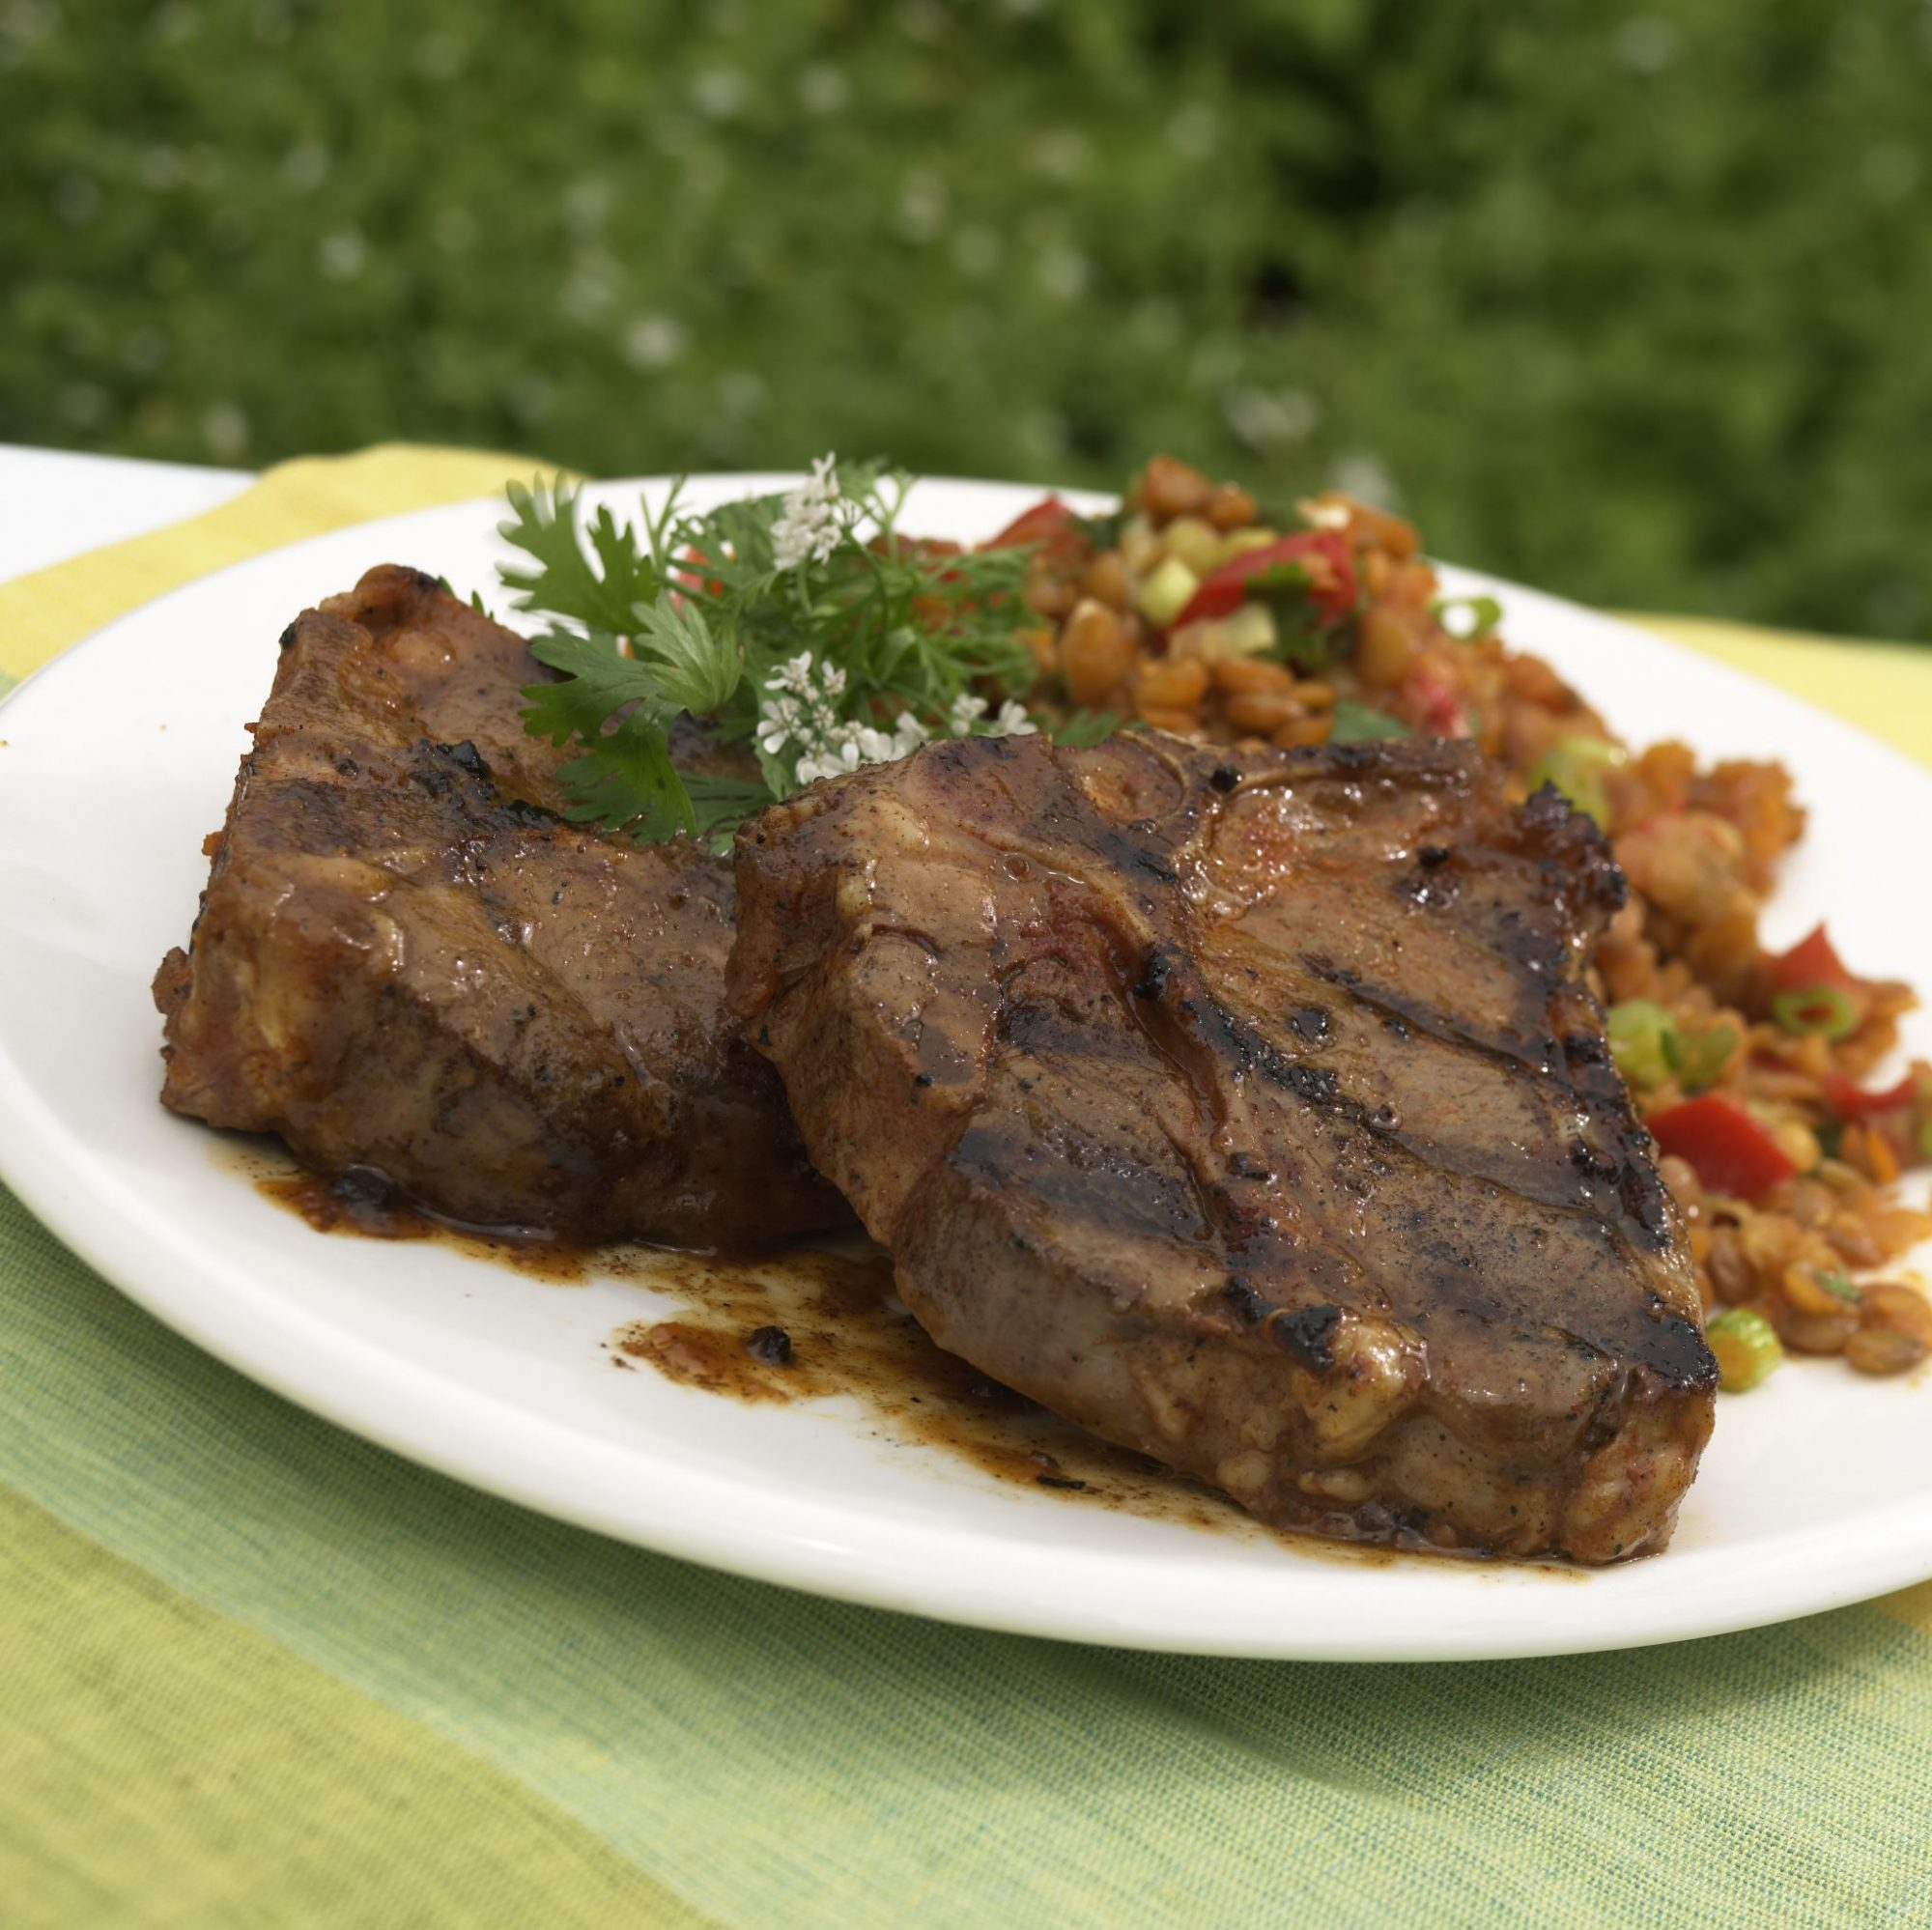 Grilled lamb shoulder chops on white plate with rice side